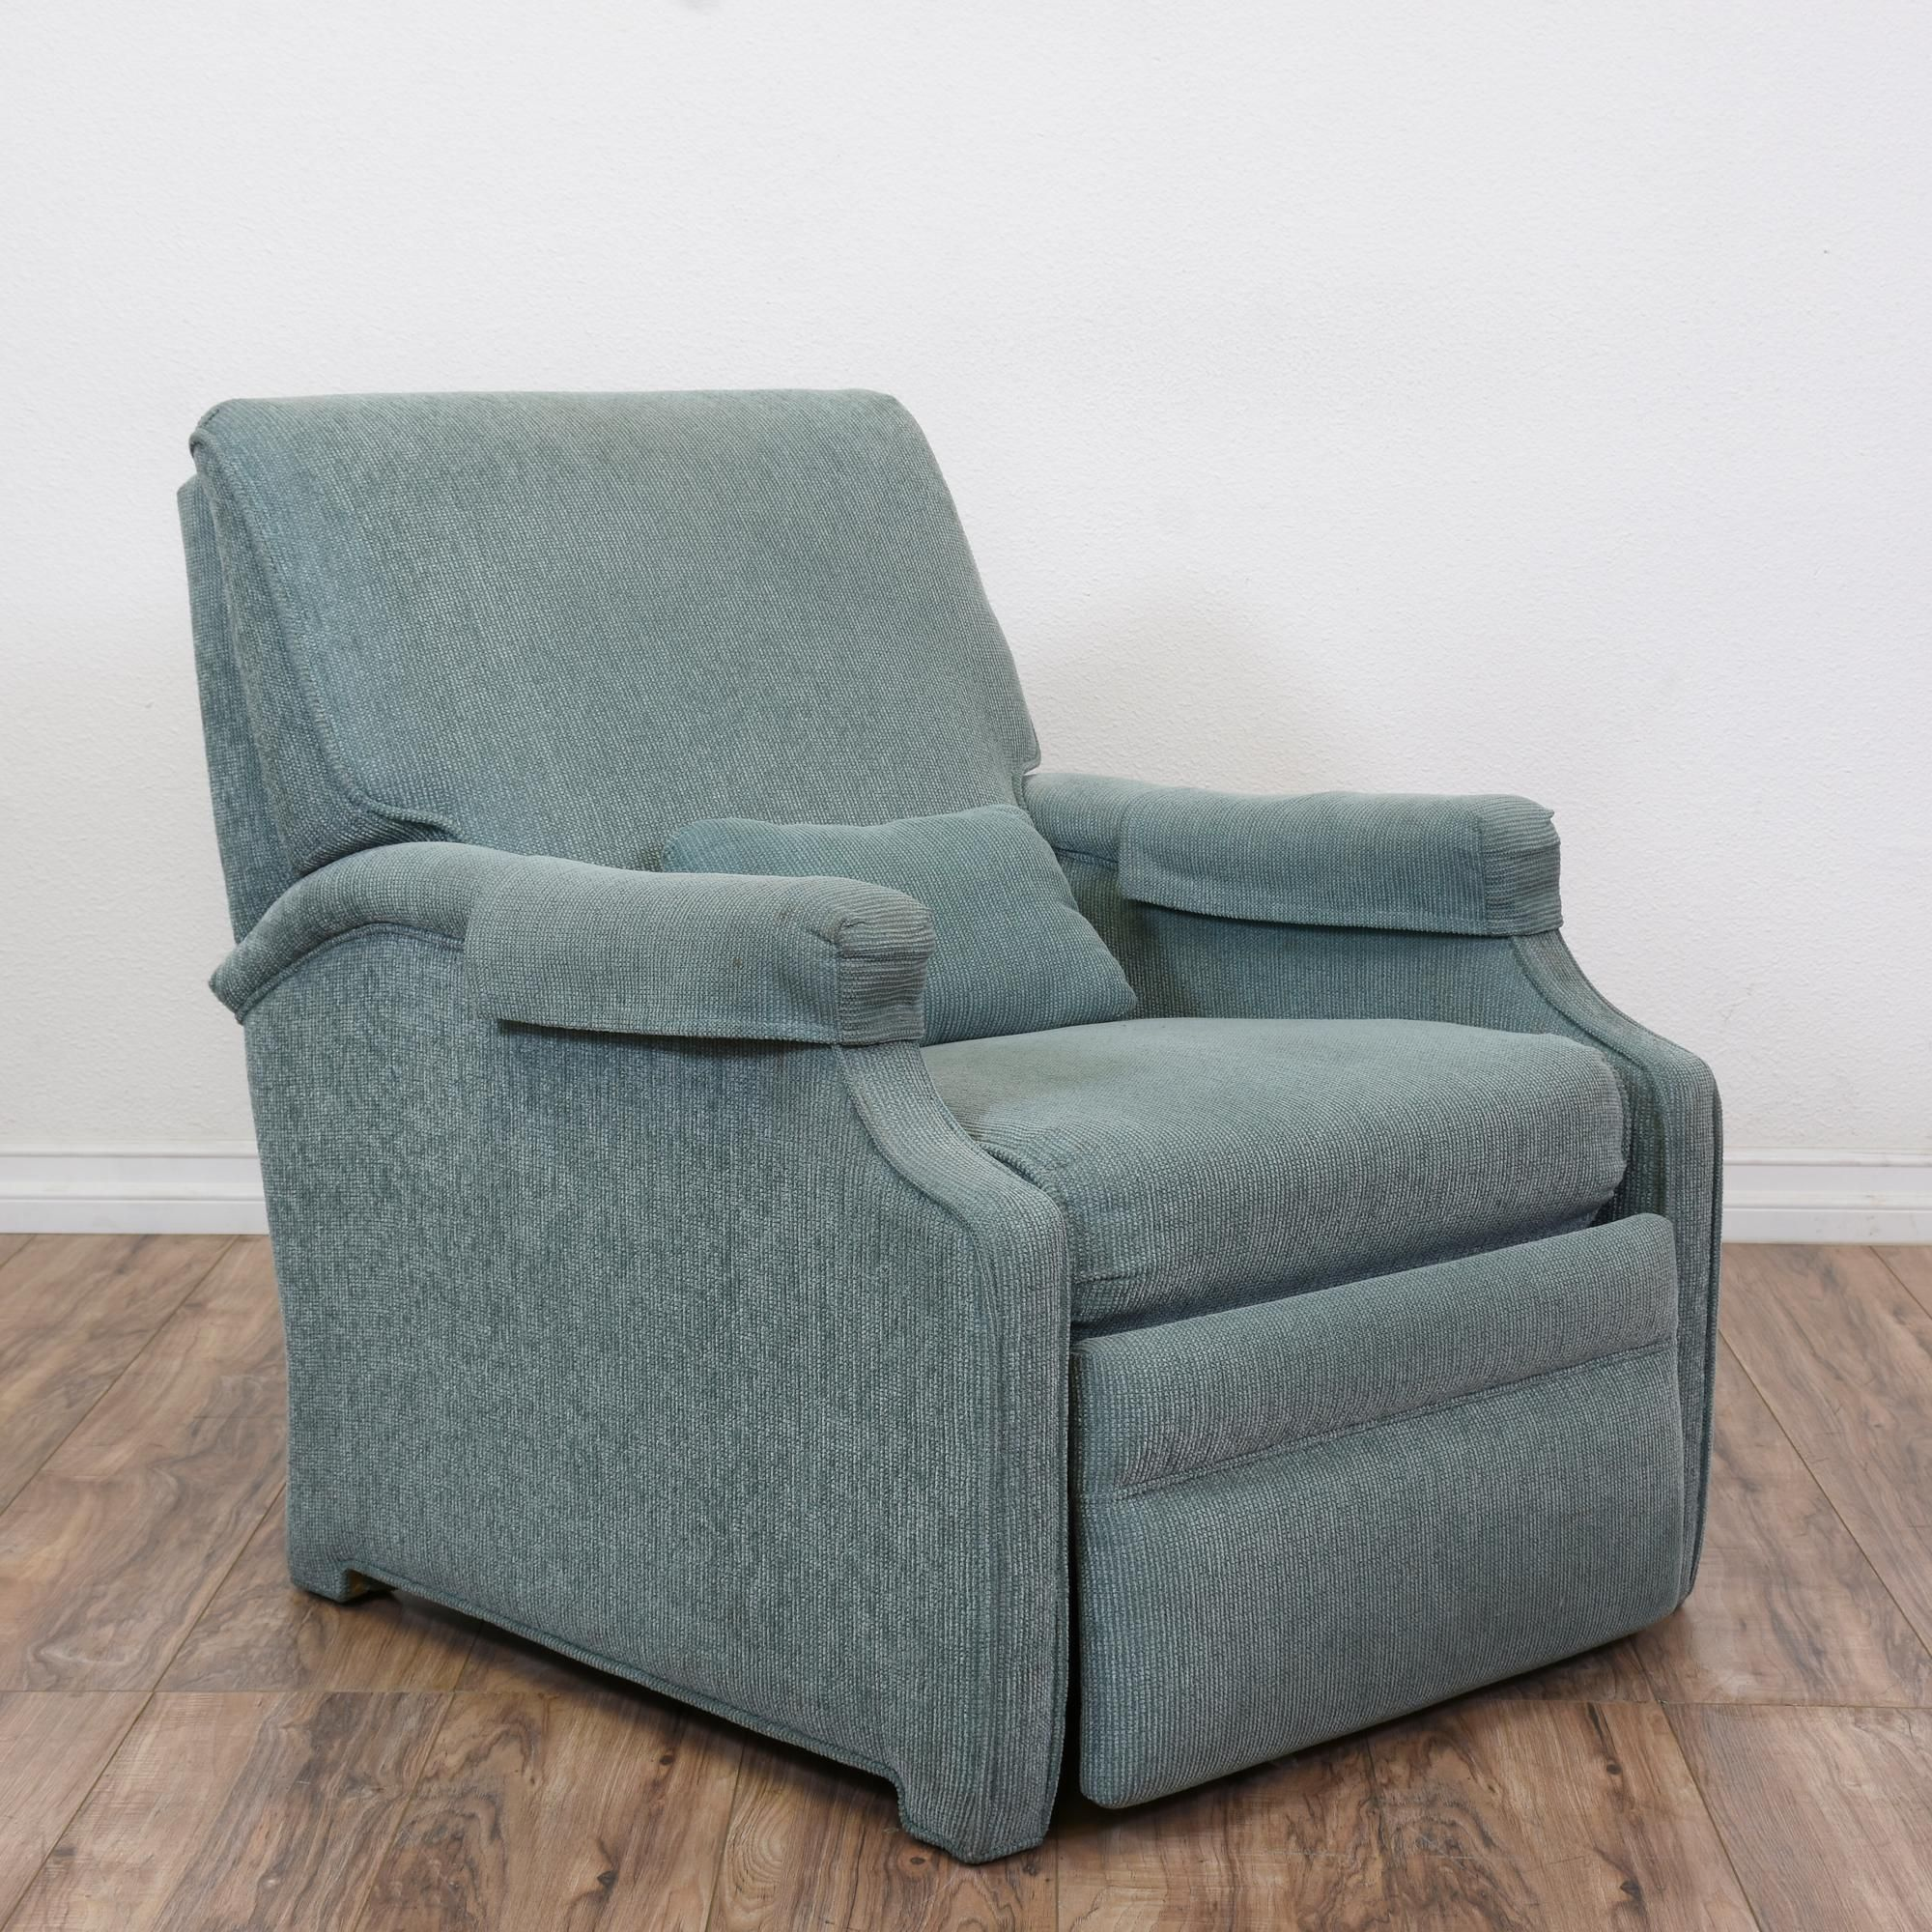 Armchair Sleeves Exercise Ball Chair Base With Wheels This Simple Recliner Is Upholstered In A Durable Light Blue Green Good Condition Reclining Back Lift Up Footrest And Removable Arm